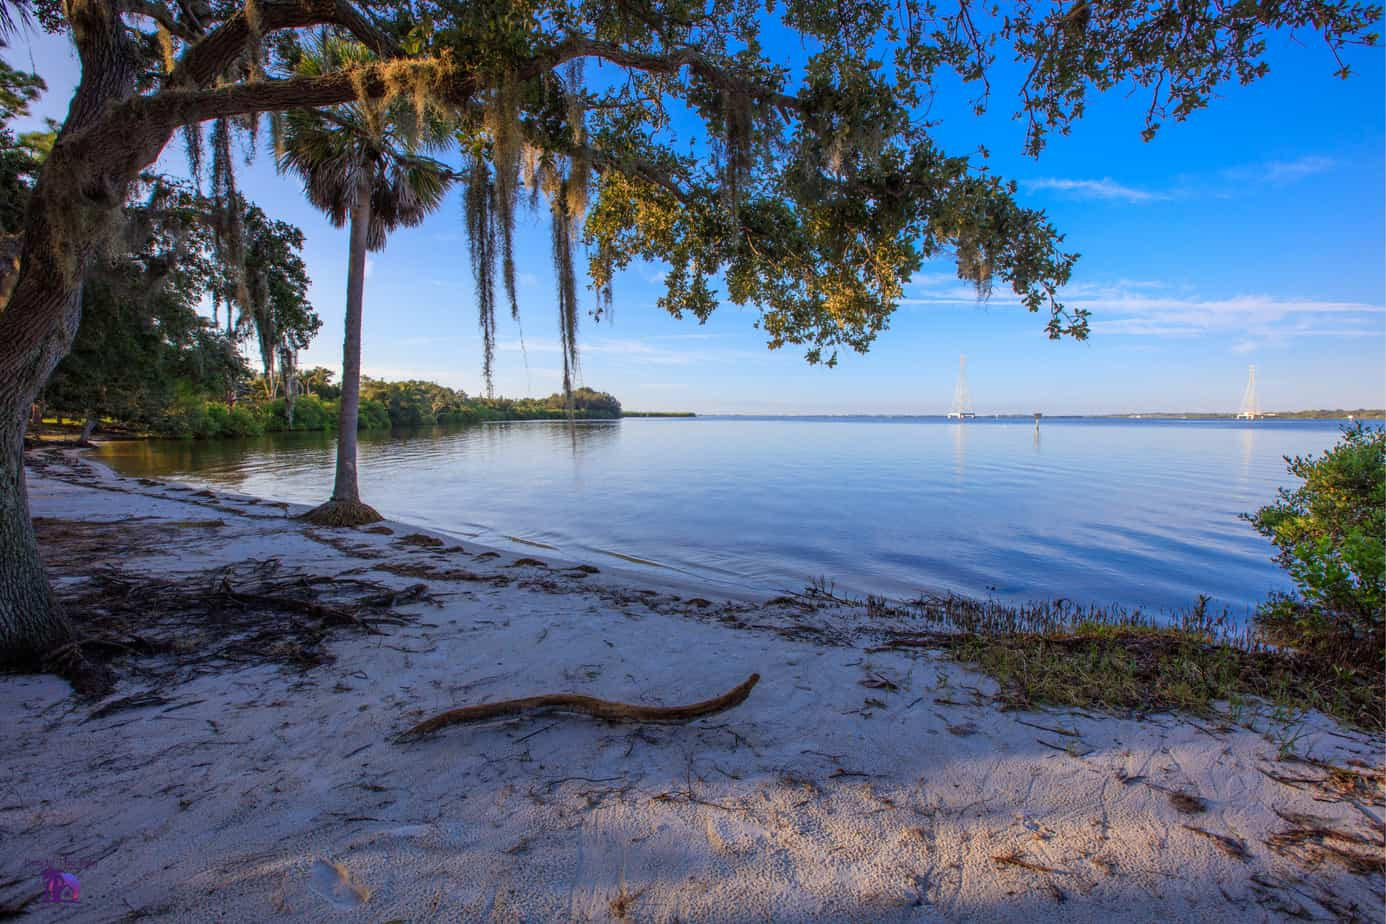 Picture of Mobbly Beach Park located in Oldsmar Florida with beach, trees, and water